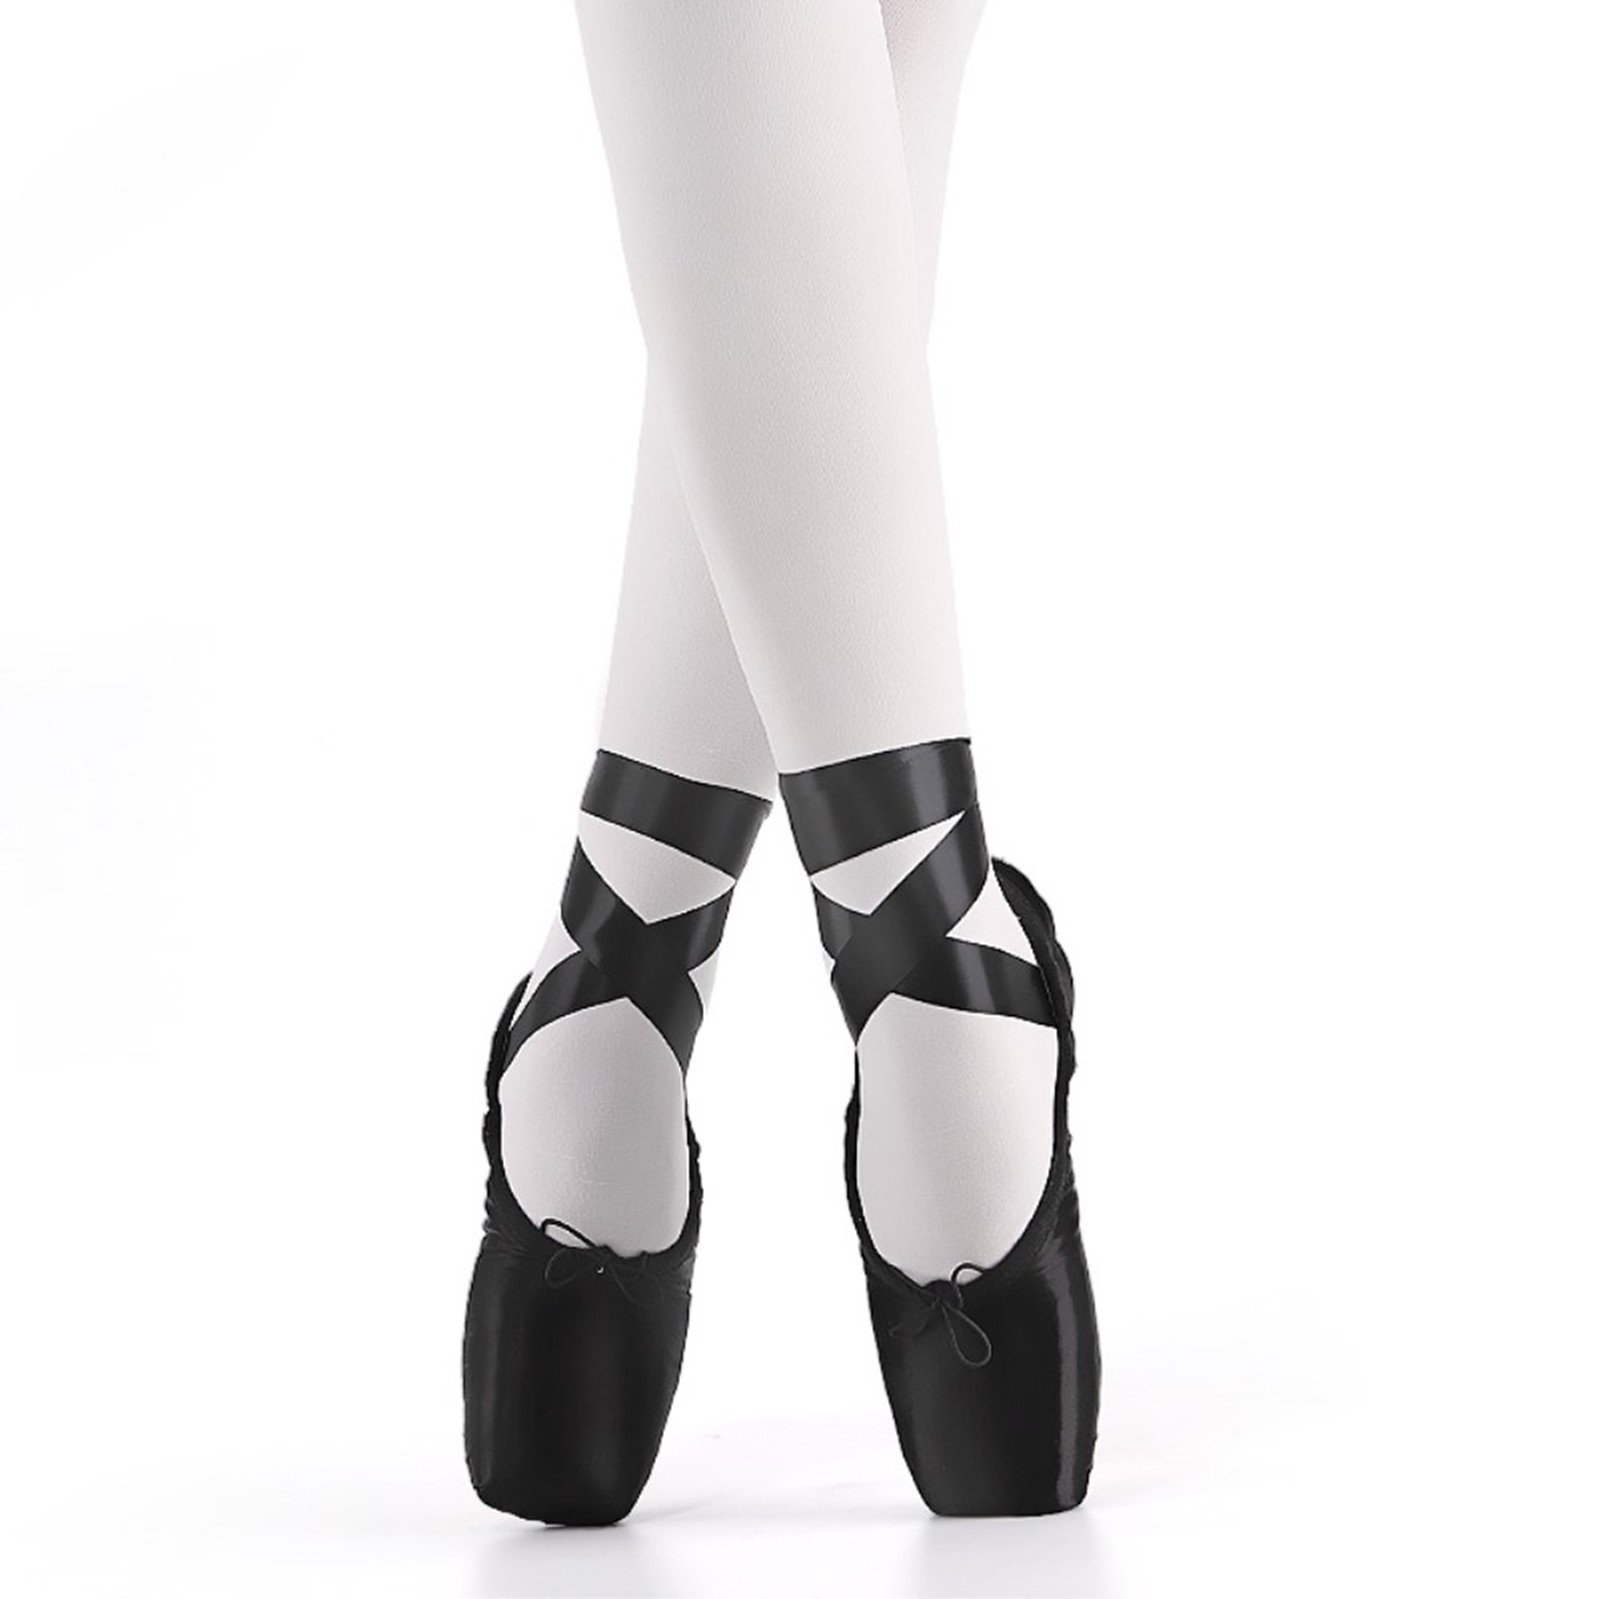 2020 New Black Red Ballet Pointe Shoes Satin Upper With Ribbon Dance Toe Shoes